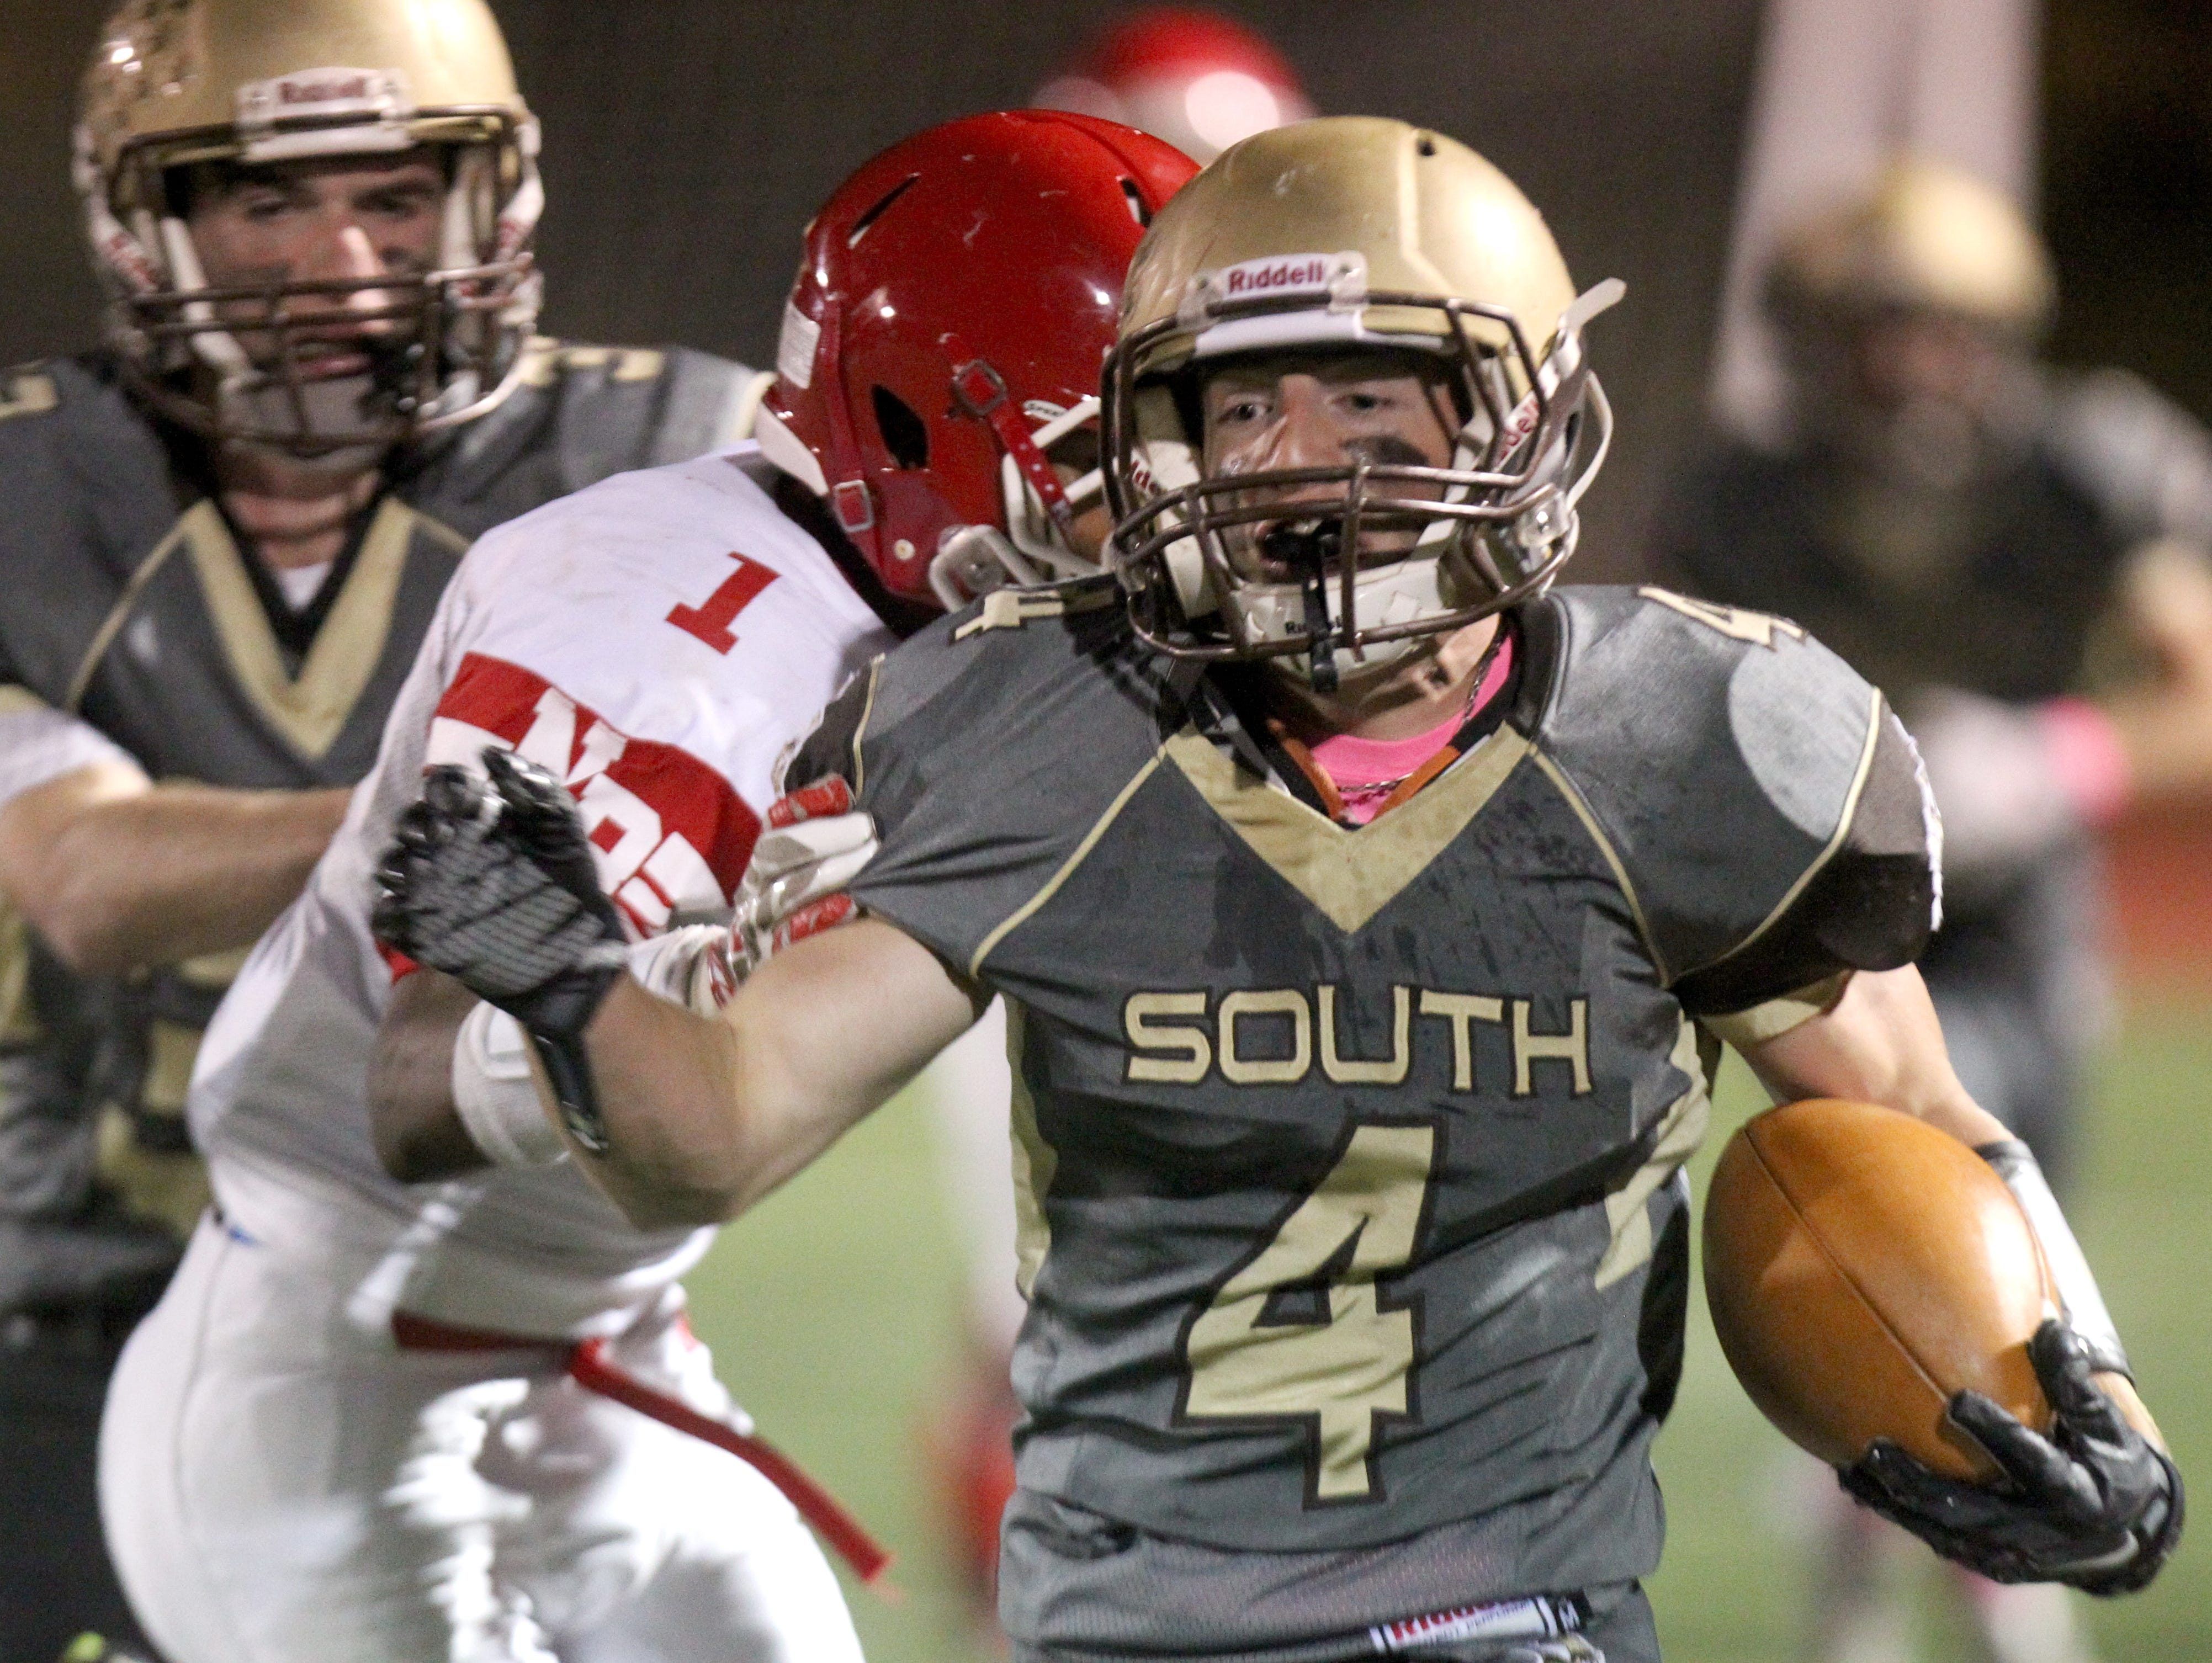 Clarkstown South's Kyle Samuels breaks past North Rockland's Lamar Seward during their Class AA qualifying round game at Clarkstown South Oct. 16, 2015.